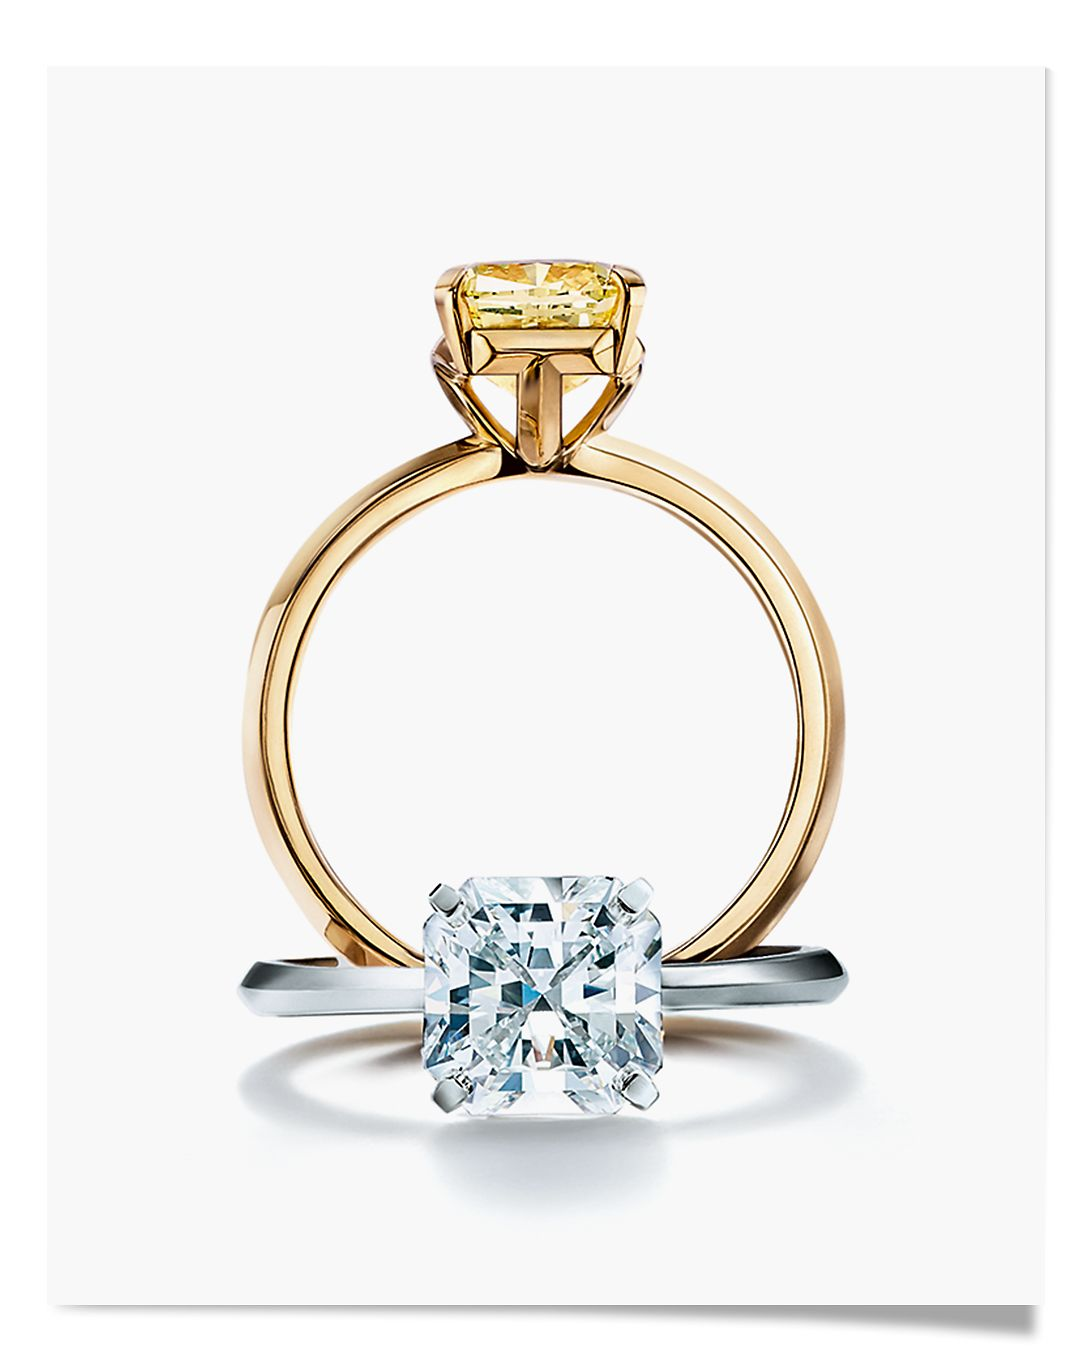 b1702118a8ca3 Love & Engagement | Tiffany & Co.